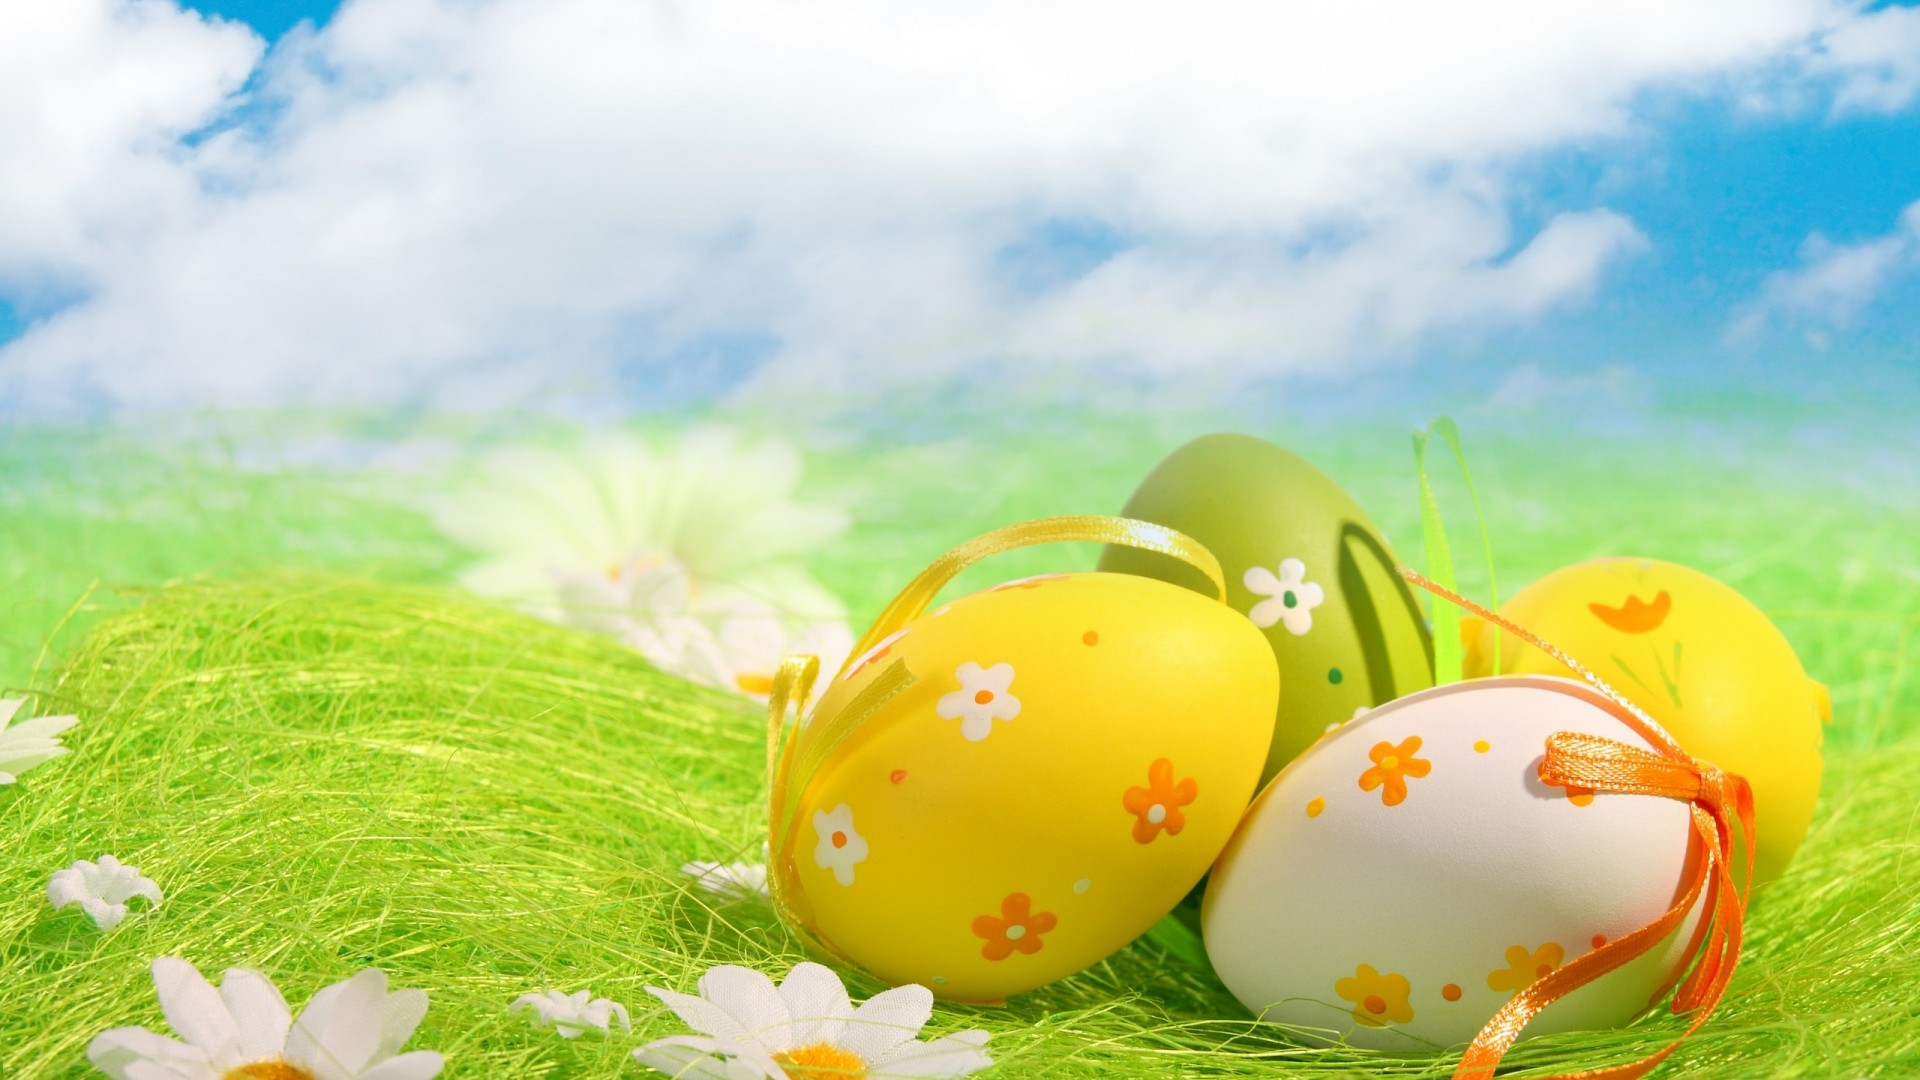 easter wallpapers hd - photo #7